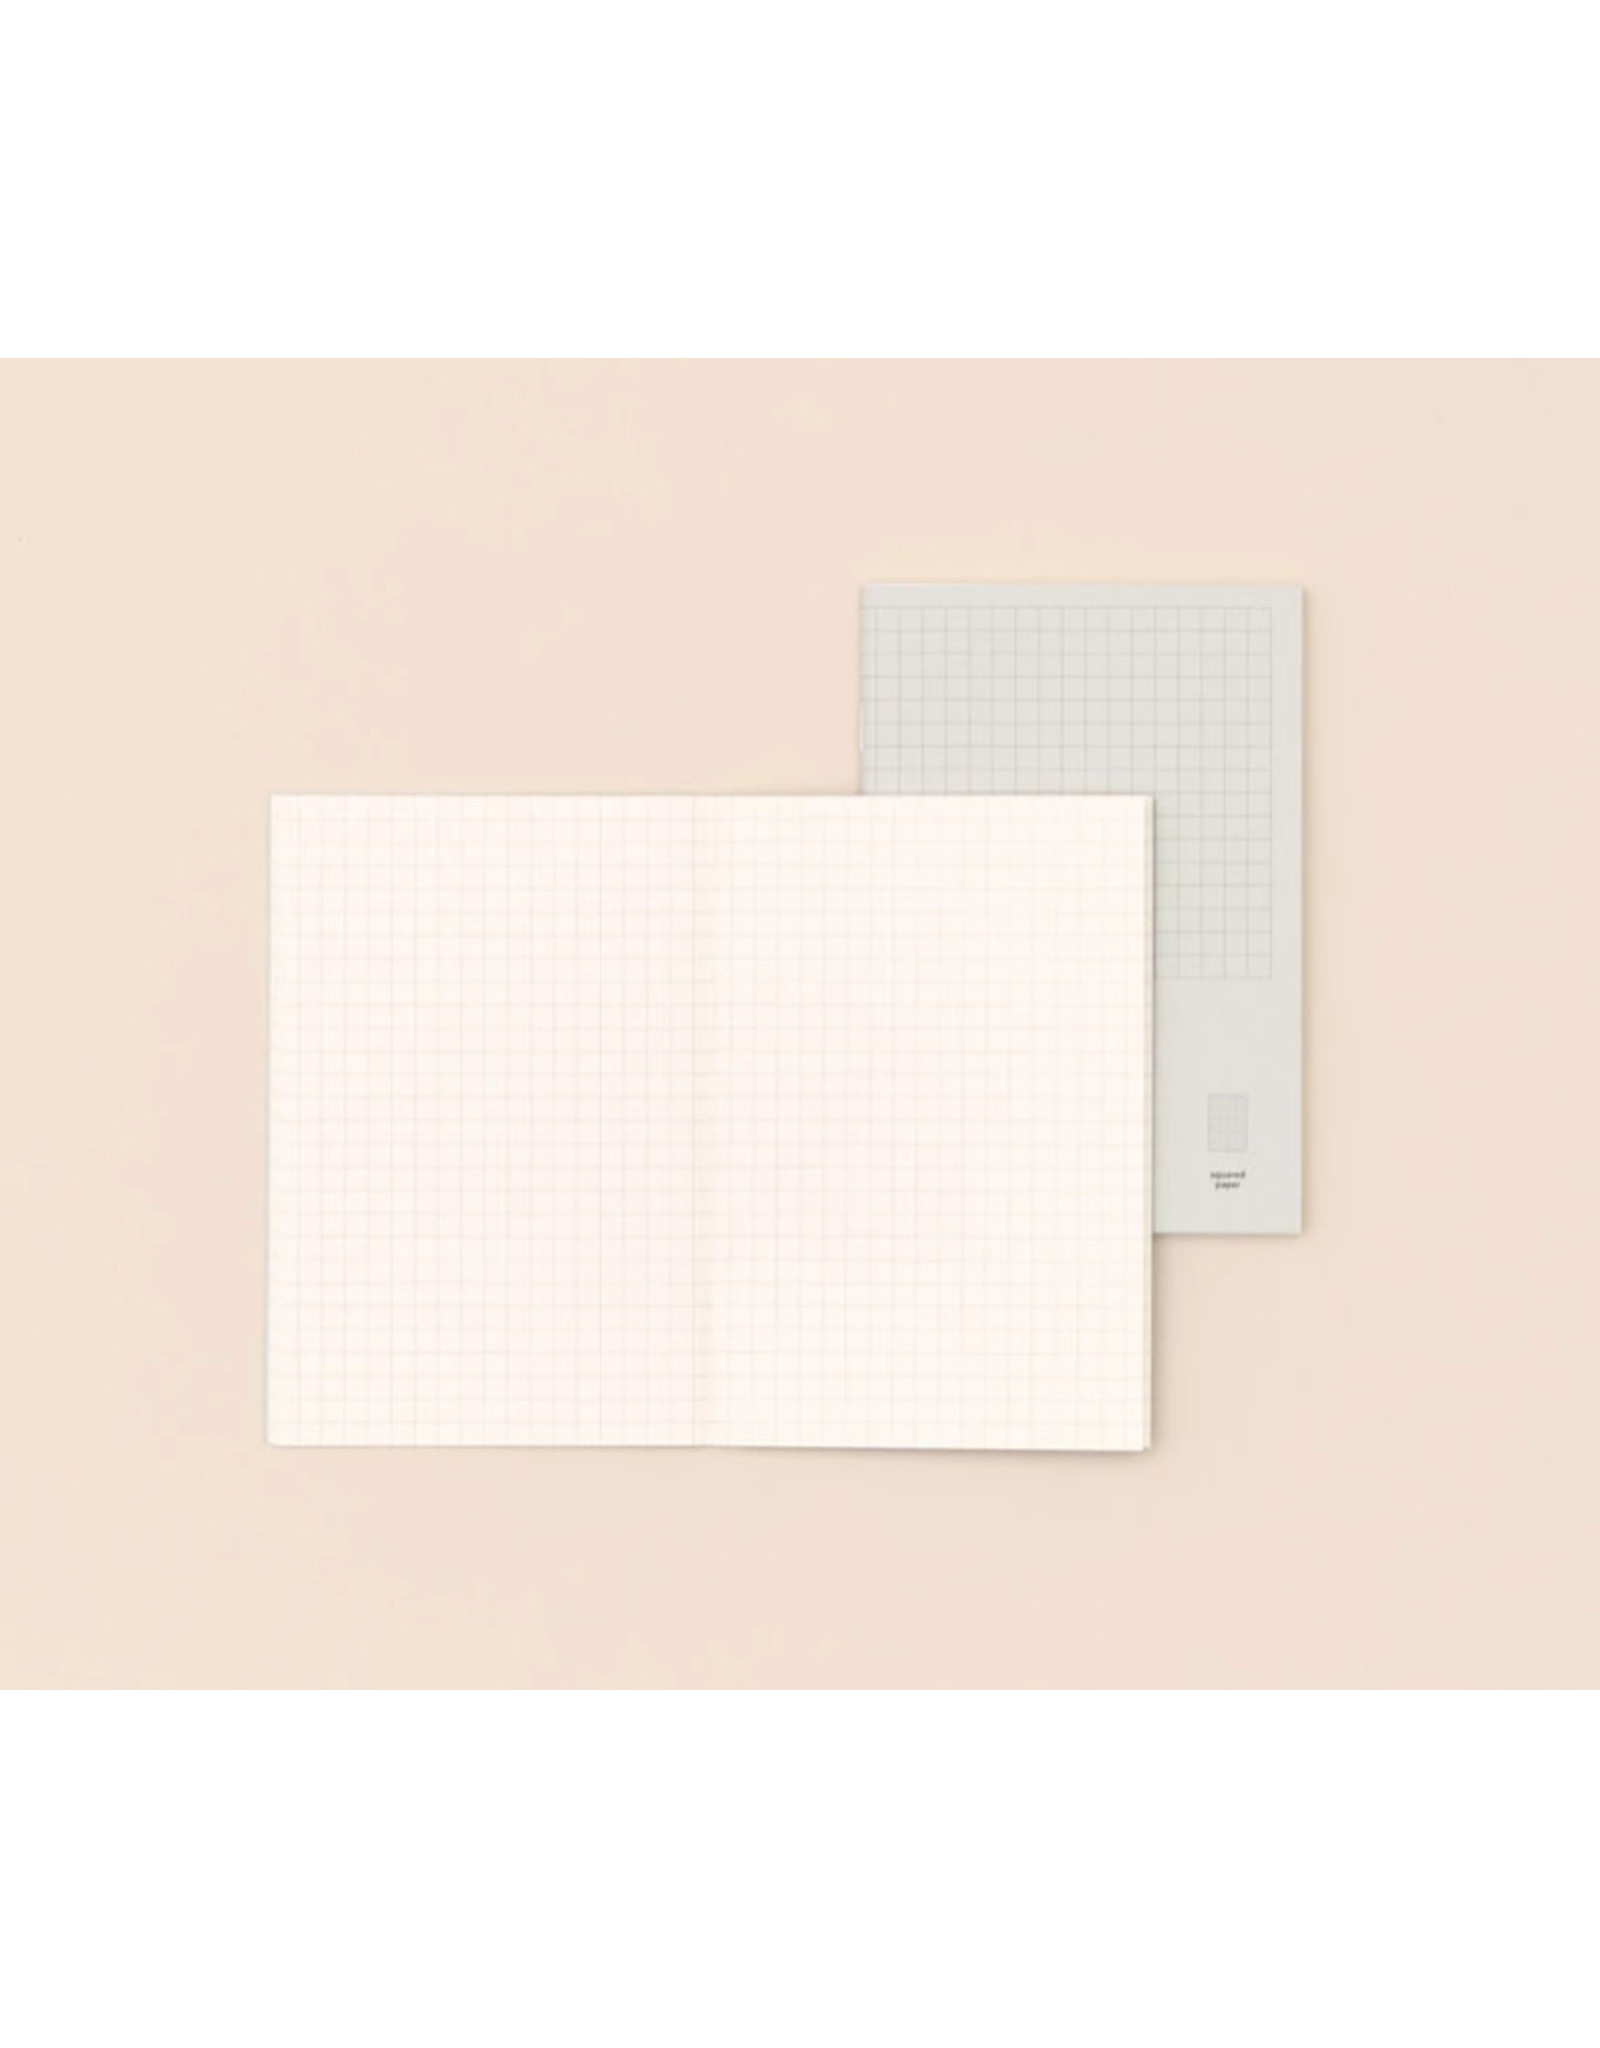 Paper republic Notebook Pocket - Squared - 10 x 14 - 48 pages